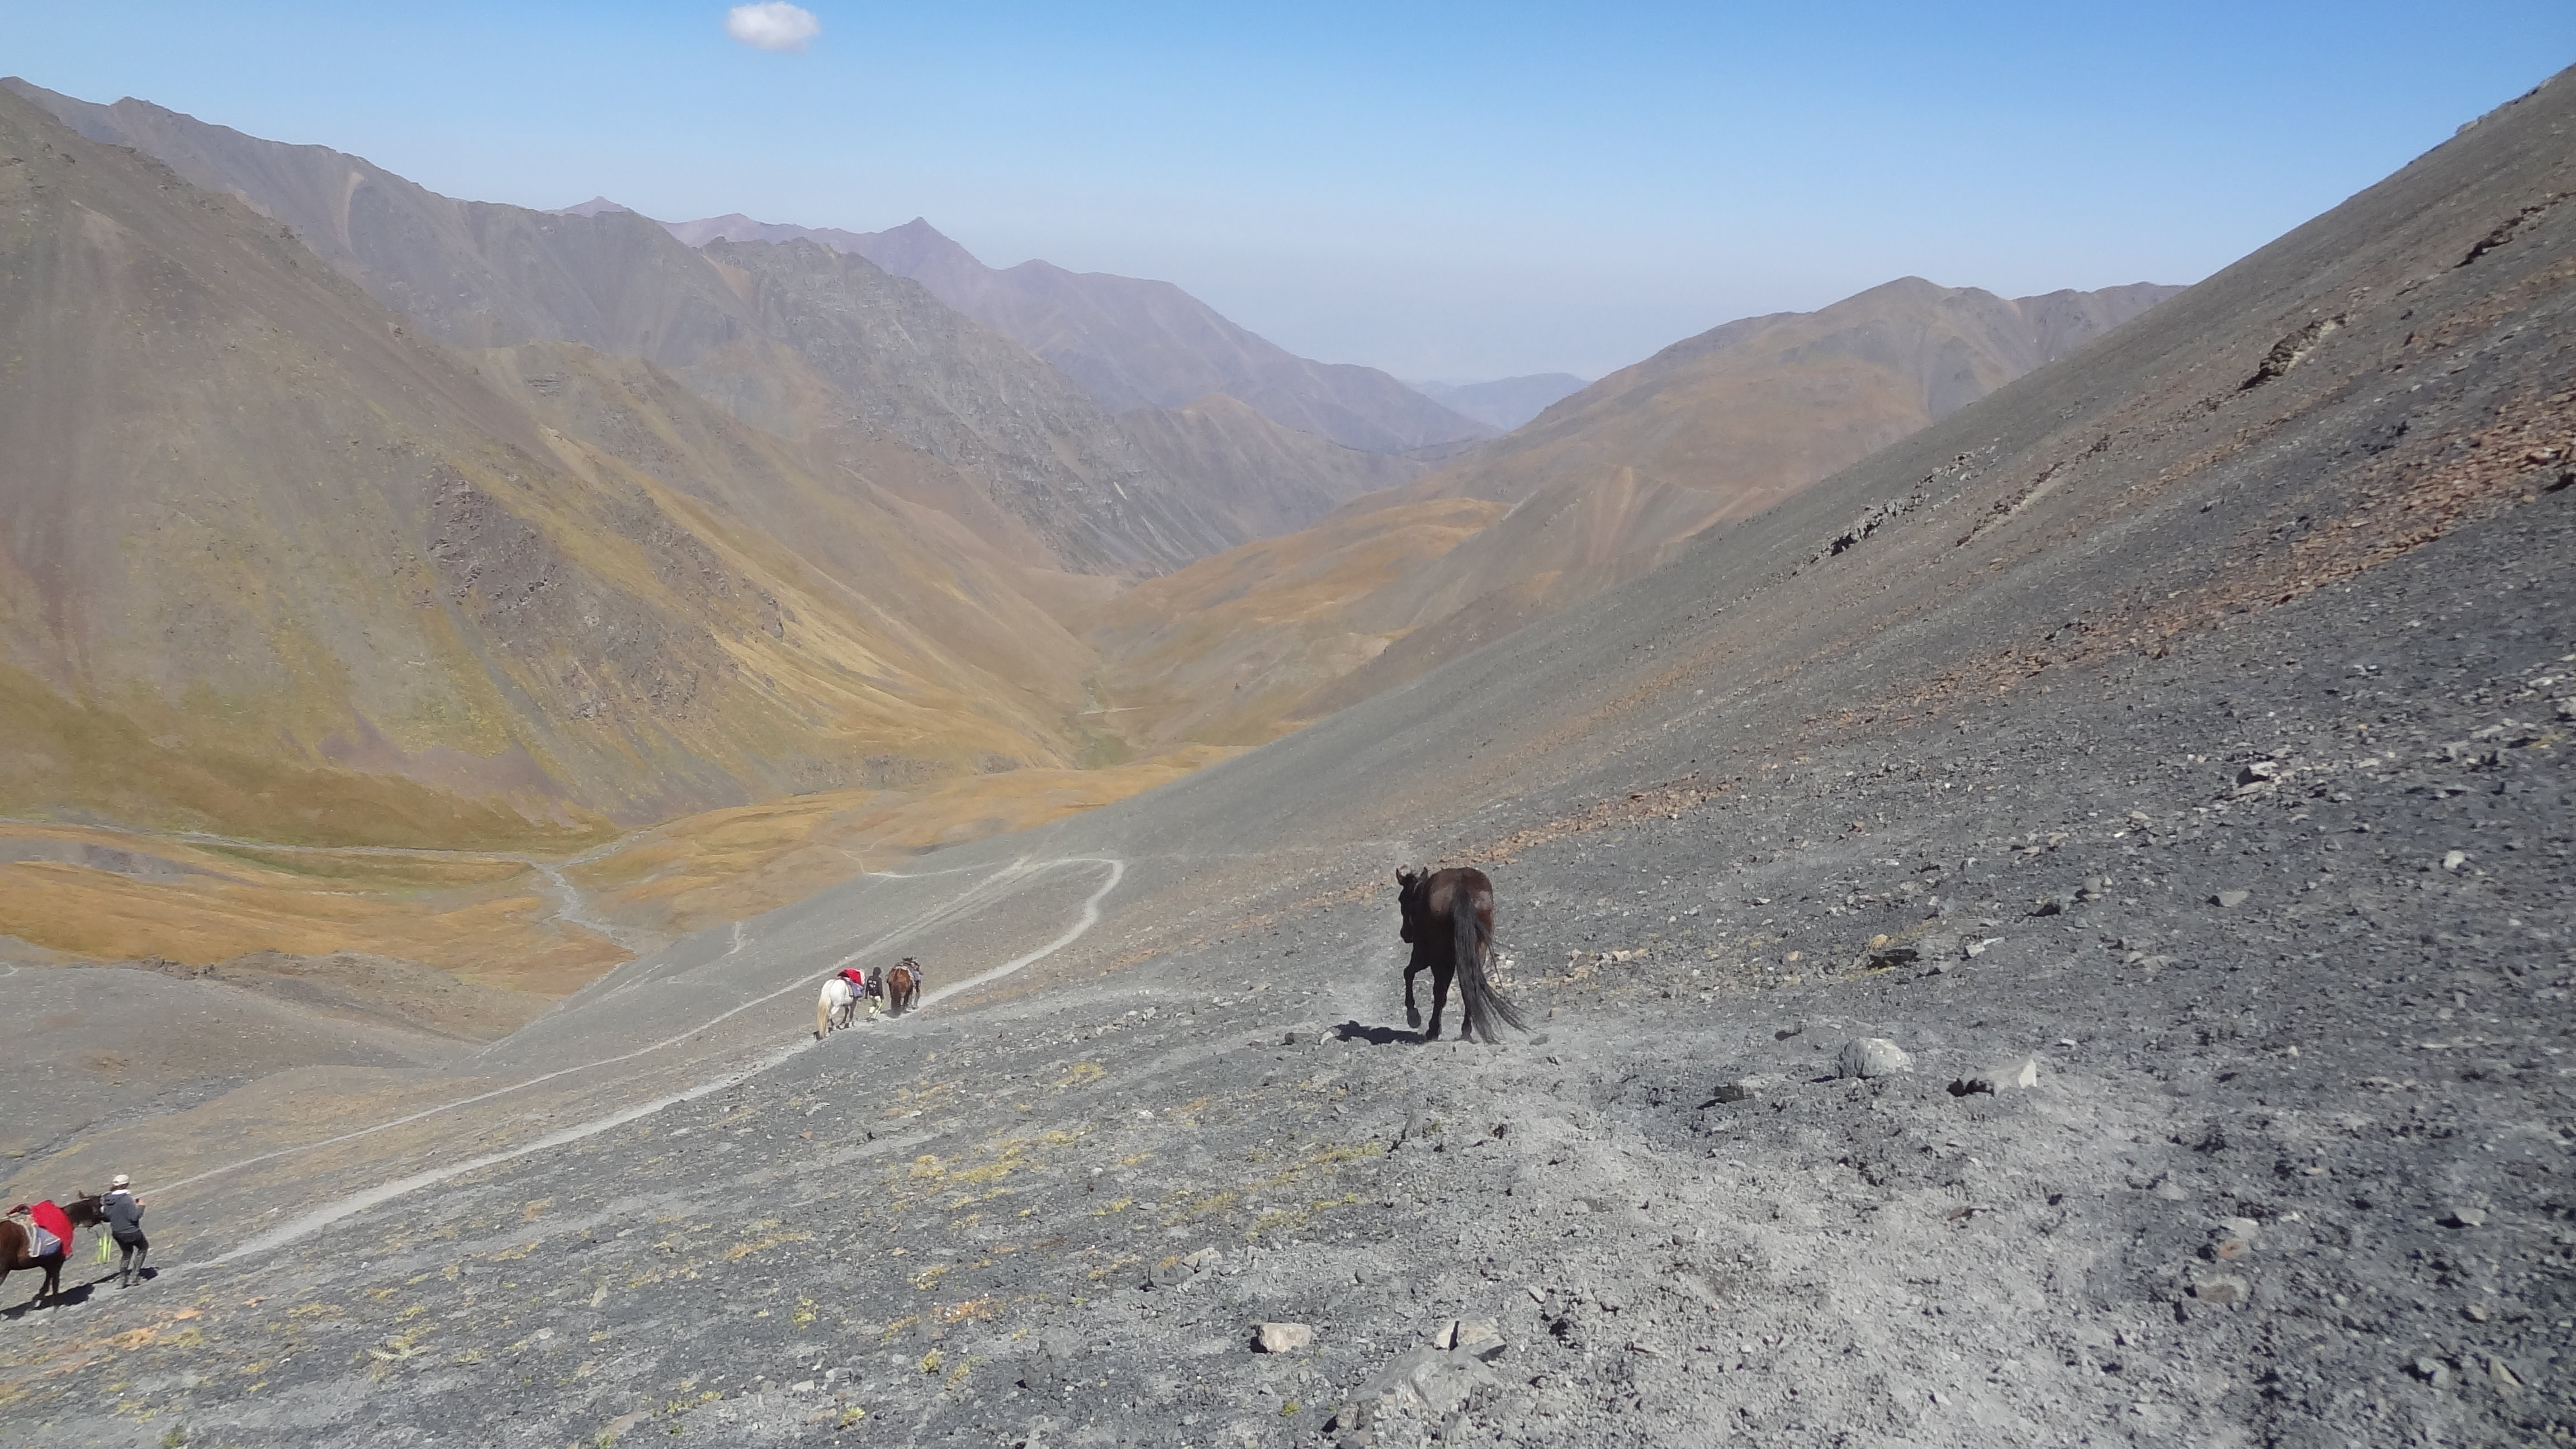 riding in the steep mountains of kyrgyzstan